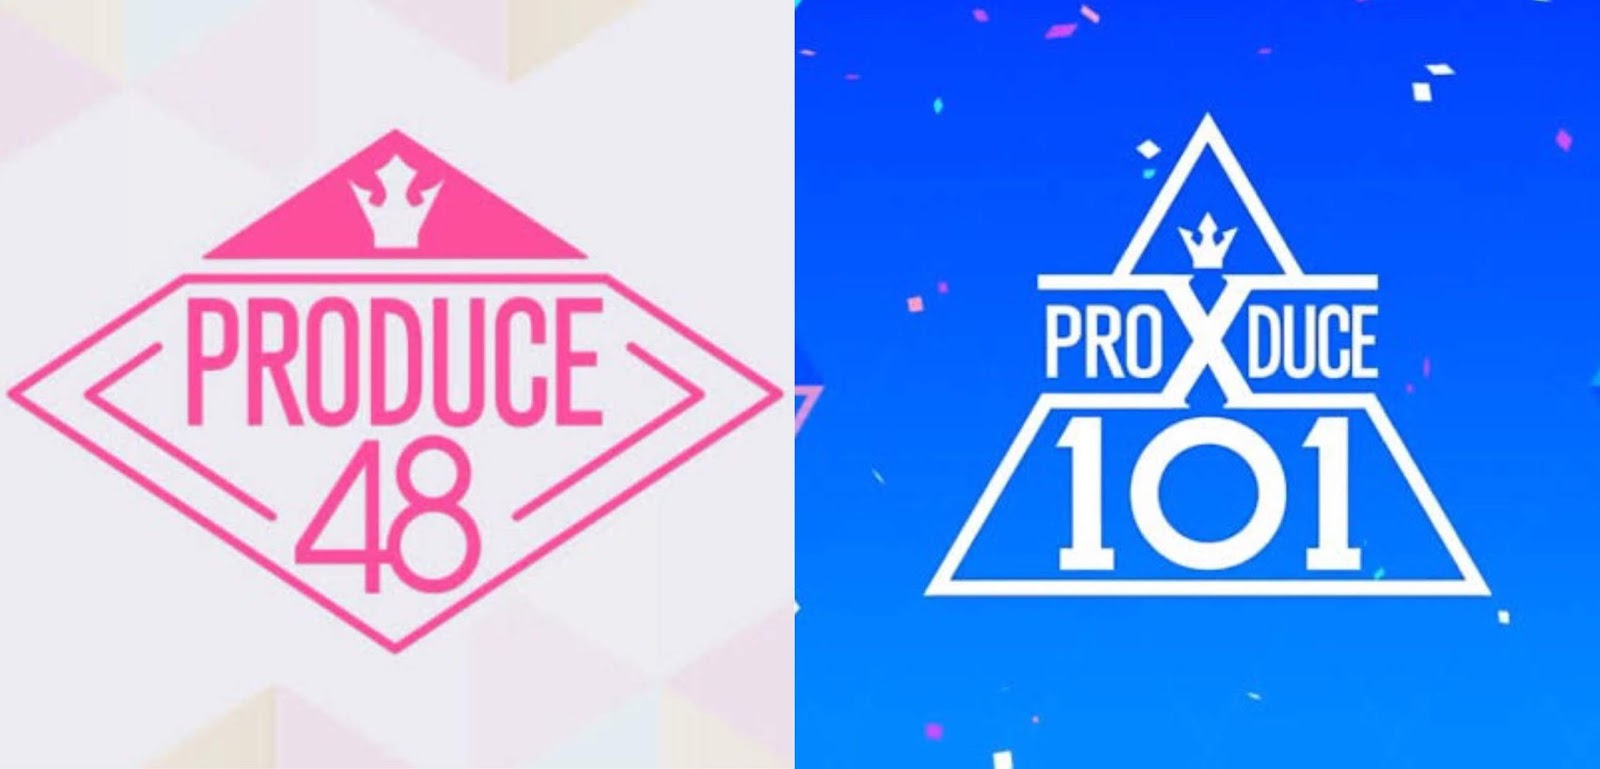 Ahn Joon Young Admits 'Produce 48' and 'Produce X101' Voting Results Manipulation